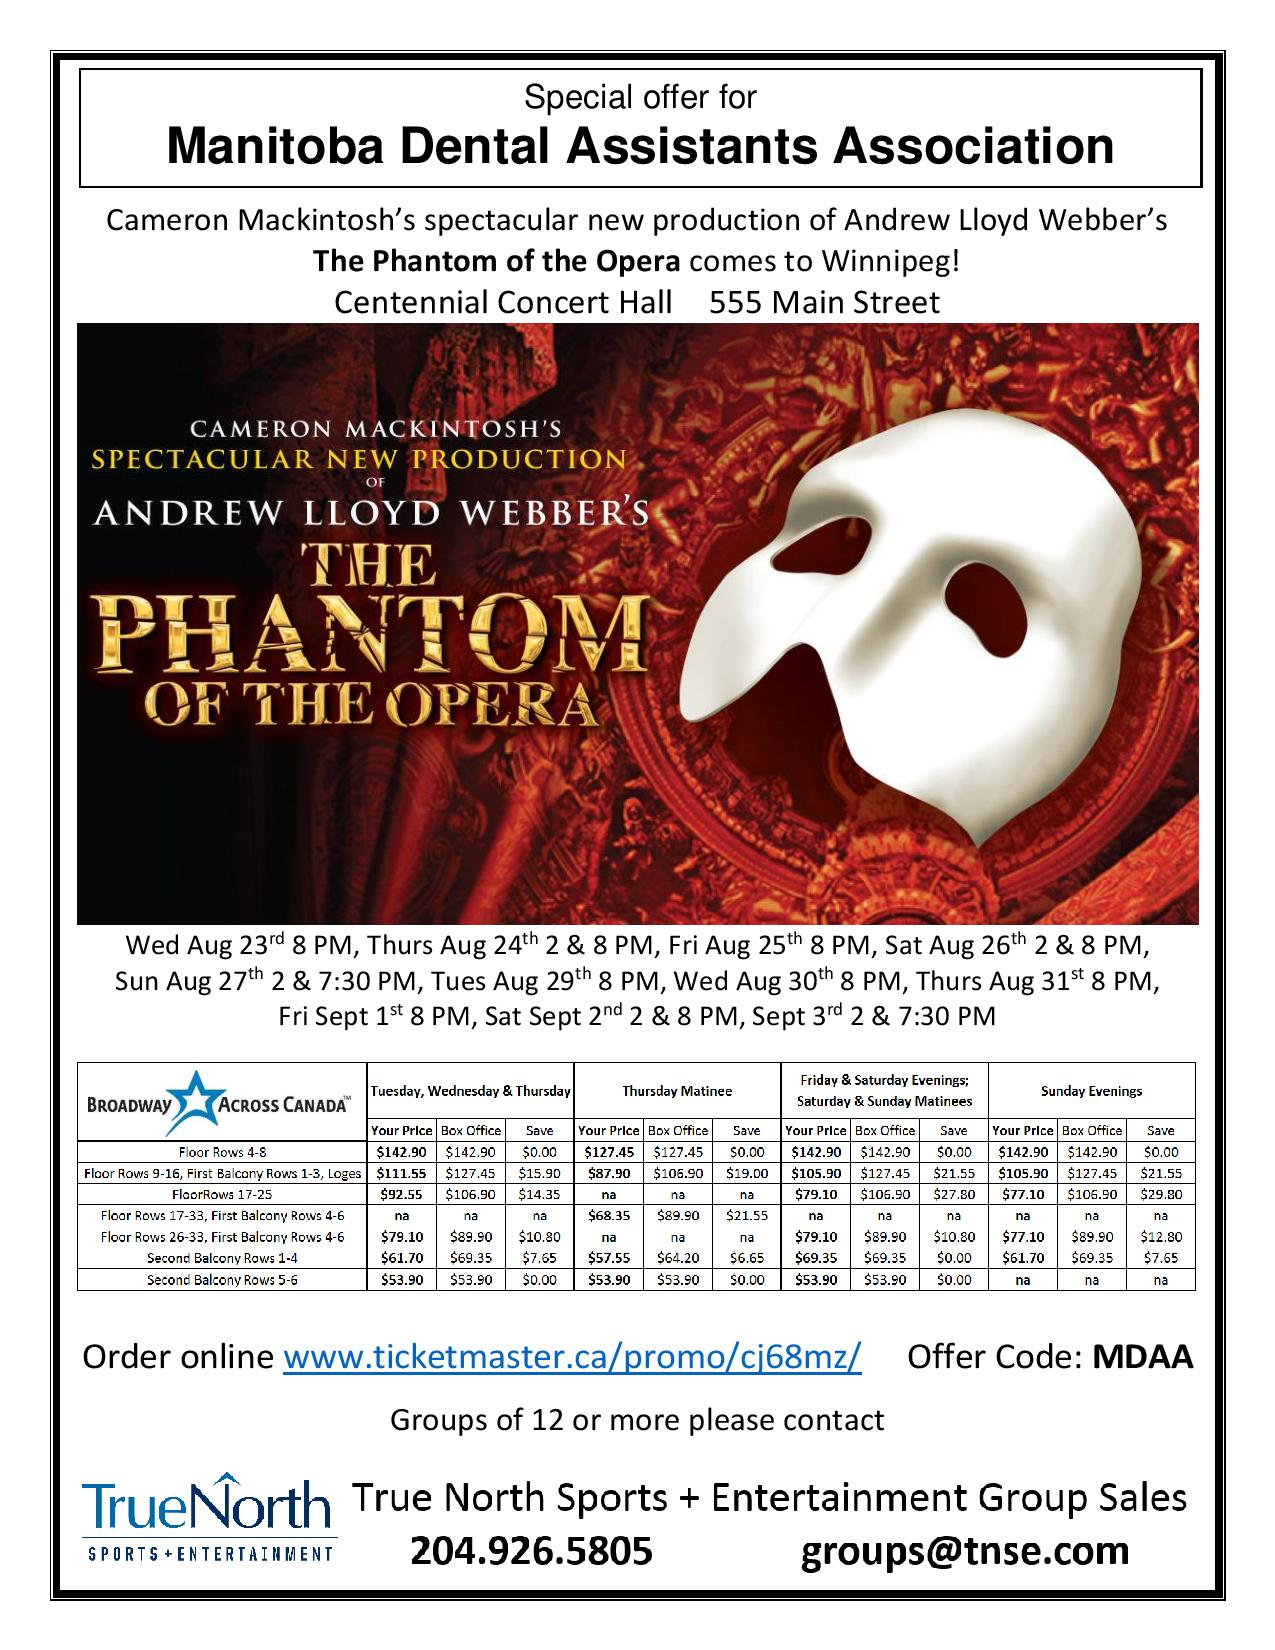 Phantom of the Opera offer_MDAA-page-001